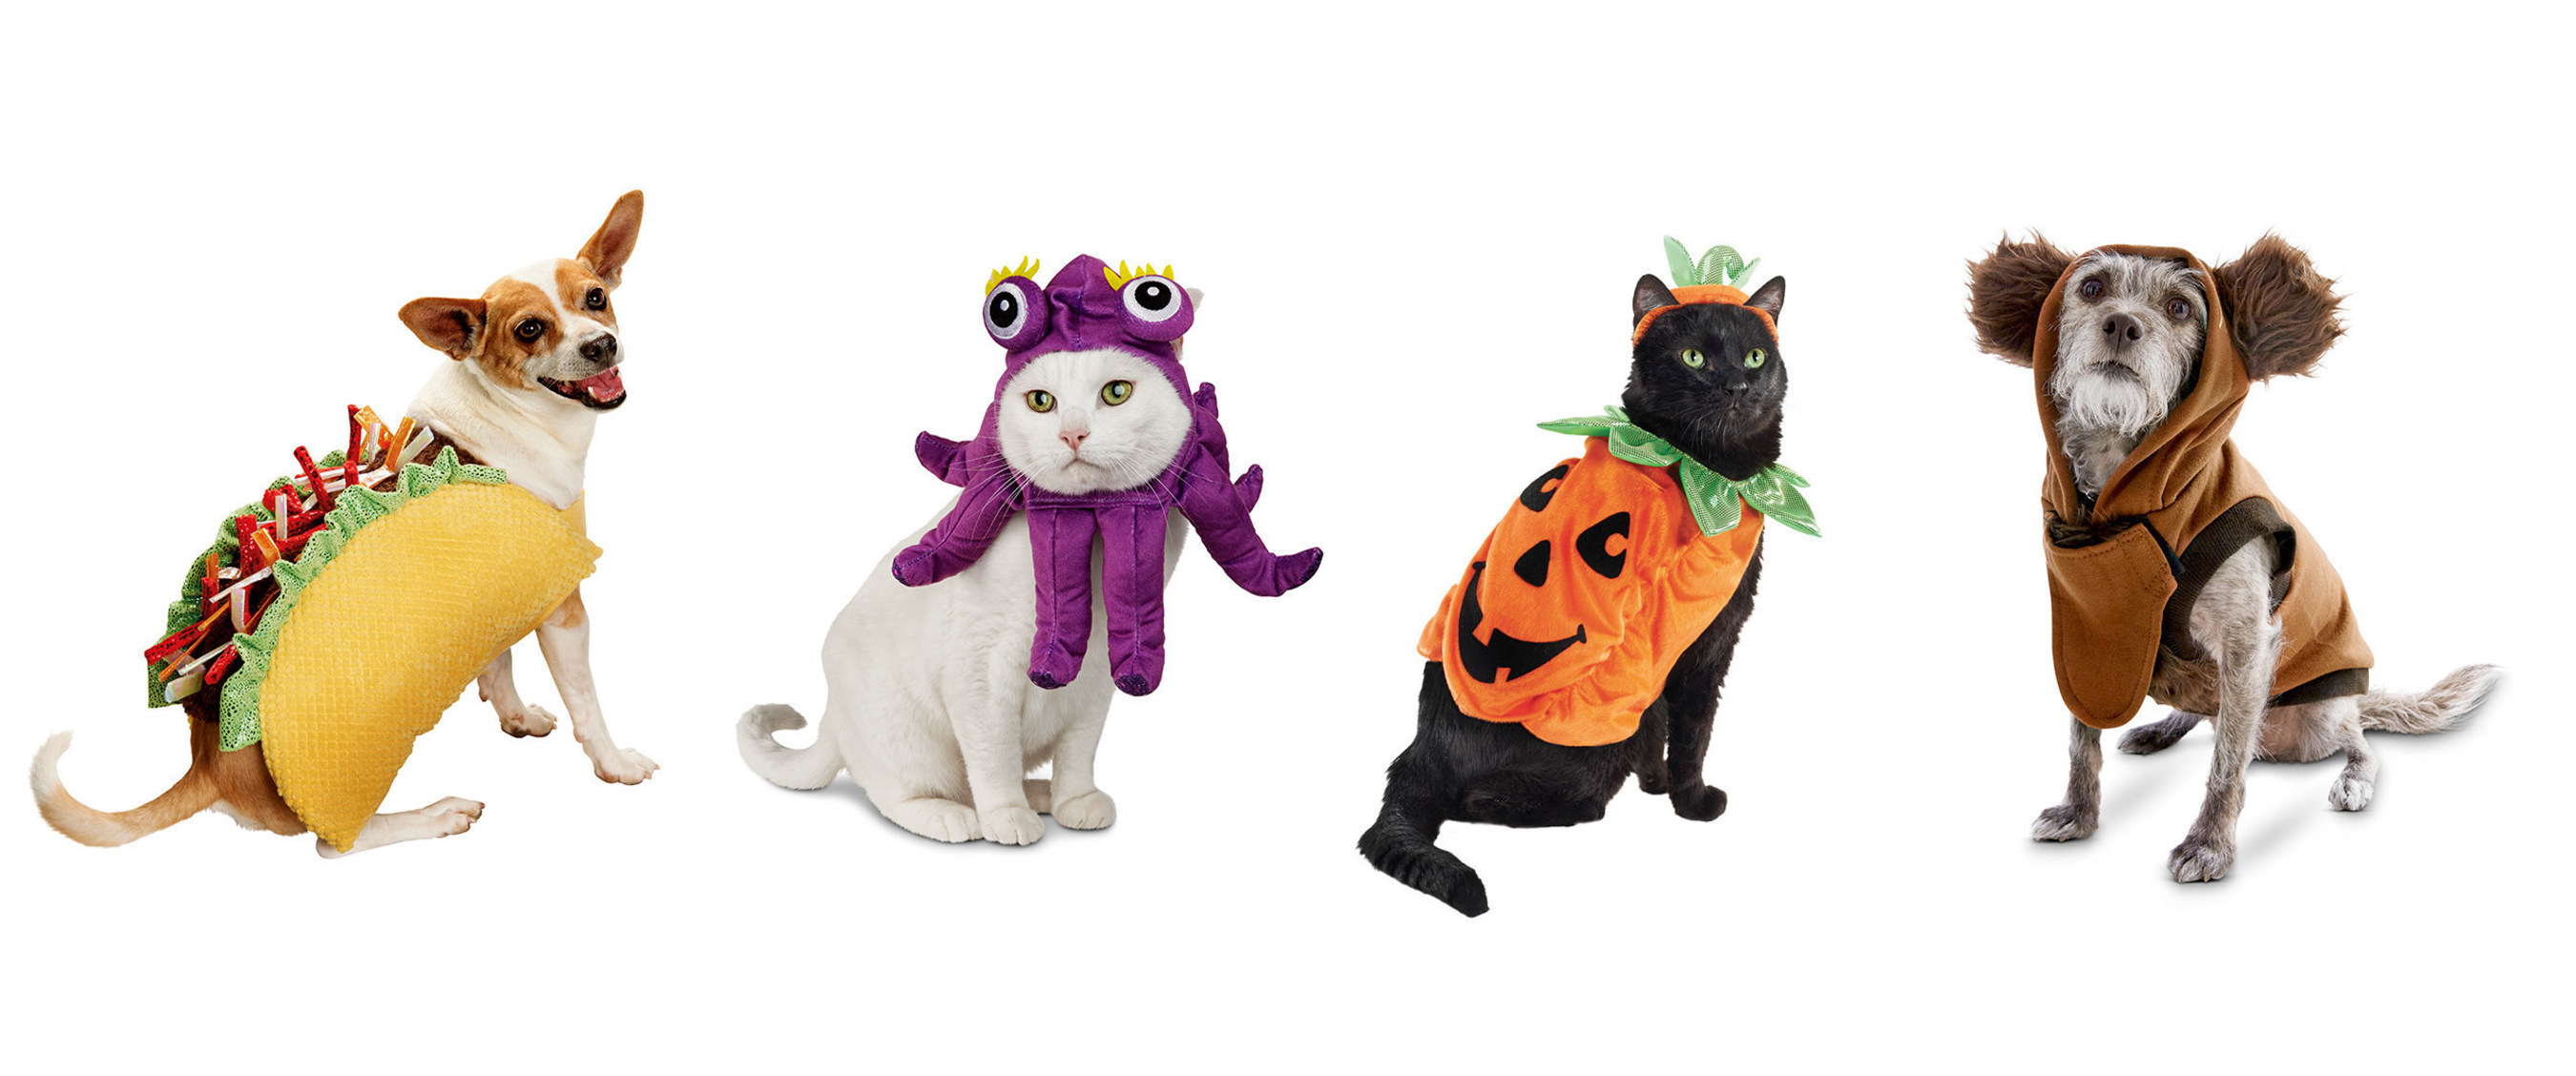 petco celebrates halloween with a new lineup of costumes and events